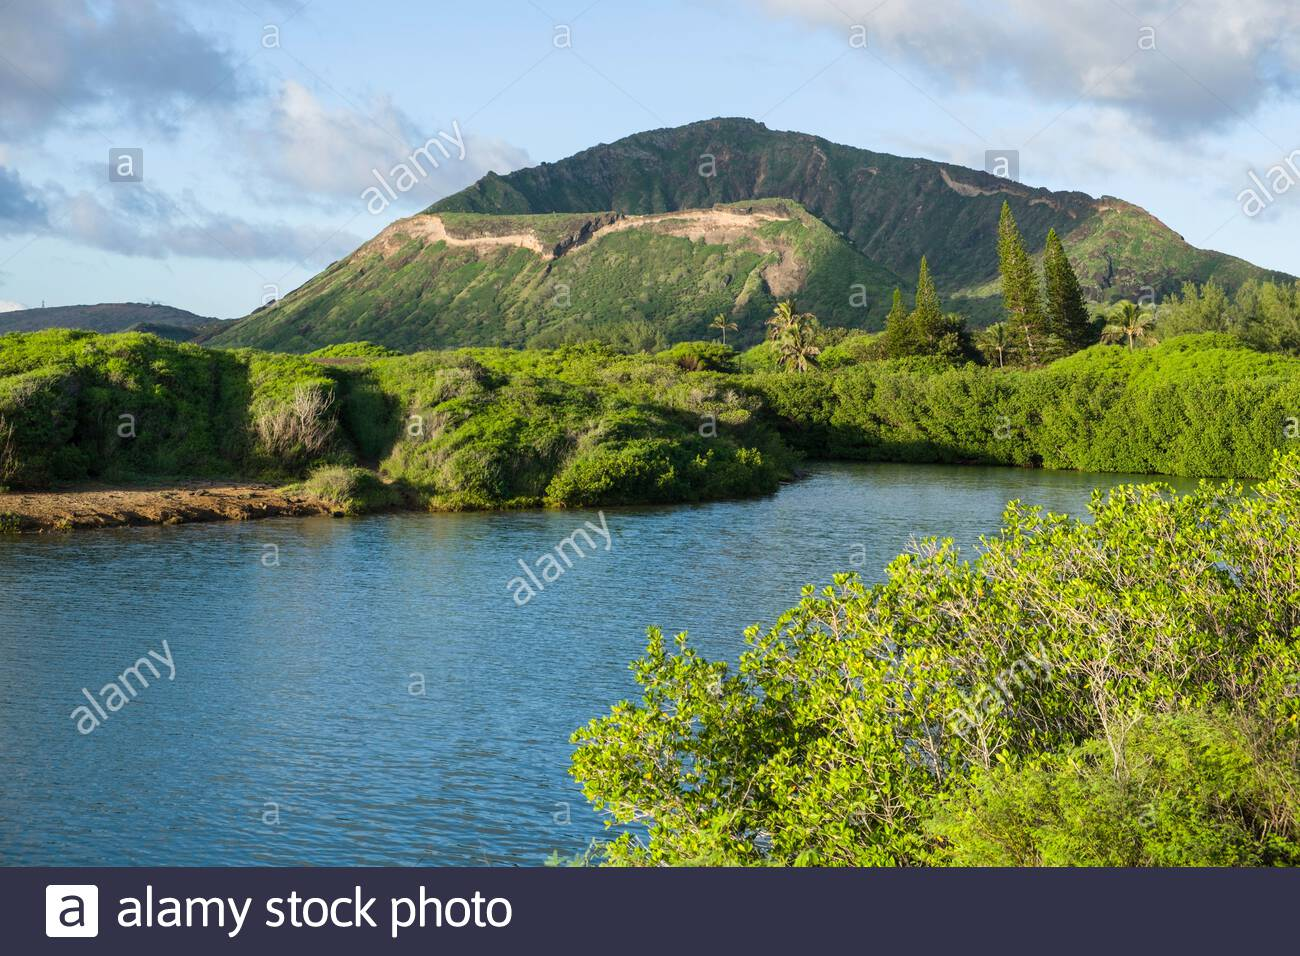 east-side-of-koko-crater-seen-from-the-kaiwi-state-scenic-shoreline-honolulu-oahu-hawaii-usa-2ADRHMD.jpg